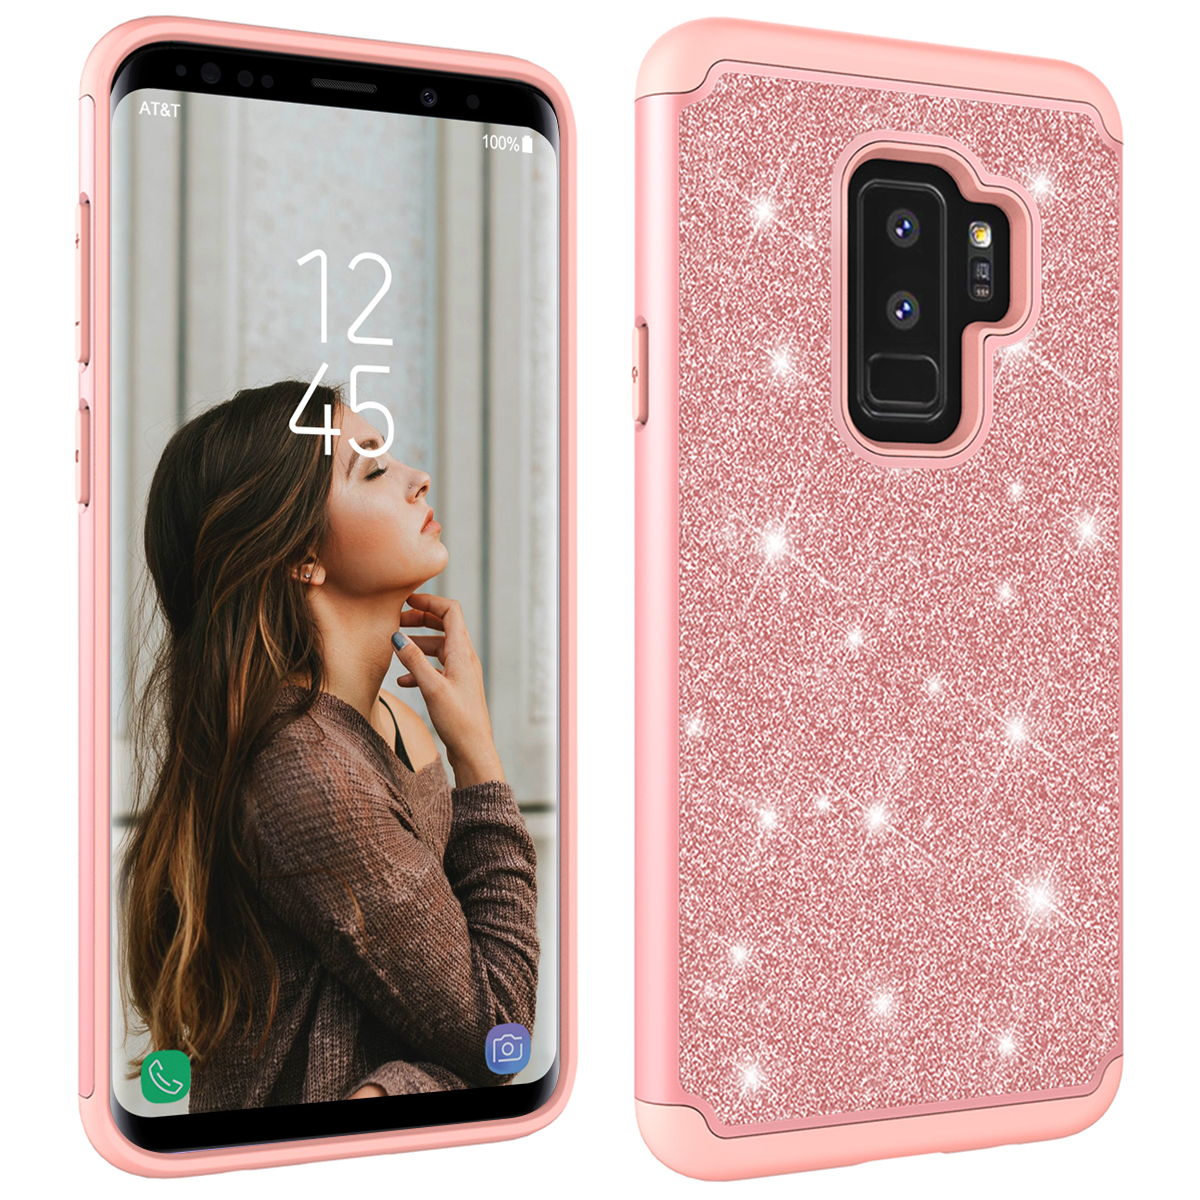 Luxury Case For Samsung Galaxy S8 S9 plus Cover 2 in 1 Glitter Bling Shockproof PC Silicone Hard Cover For Samsung J3 J7 Note 9